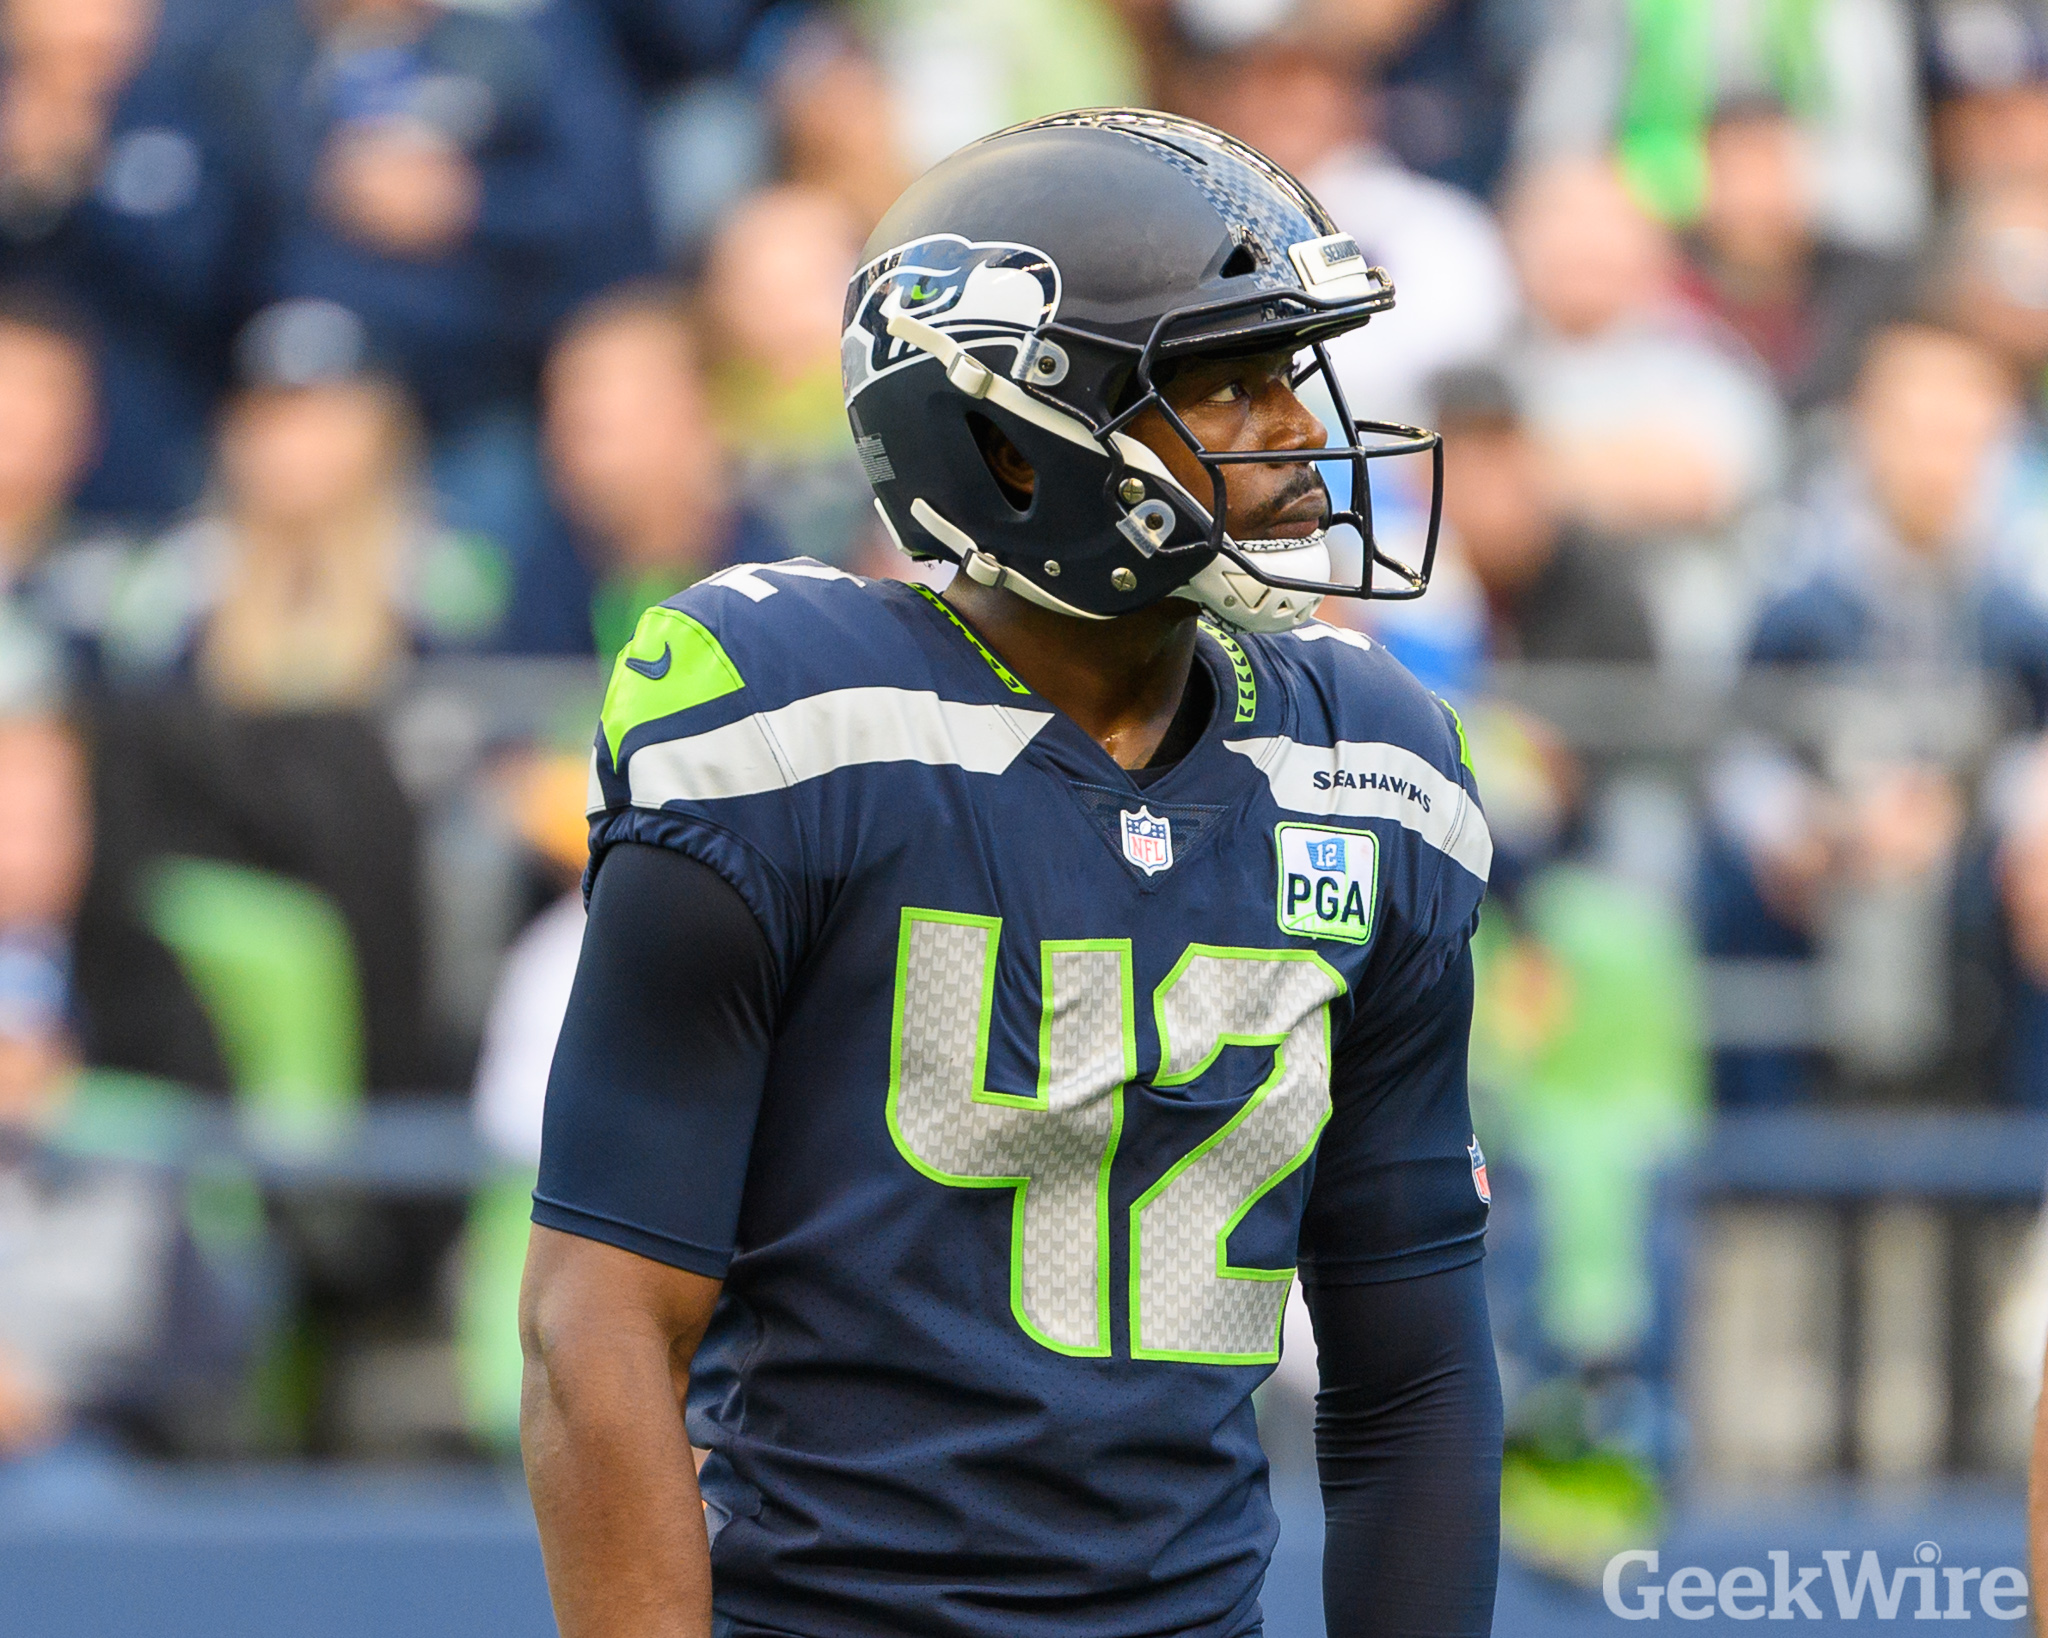 8d0235ceb66 NFL helmet safety rankings  Seattle startup Vicis tops list again with  high-tech head protector